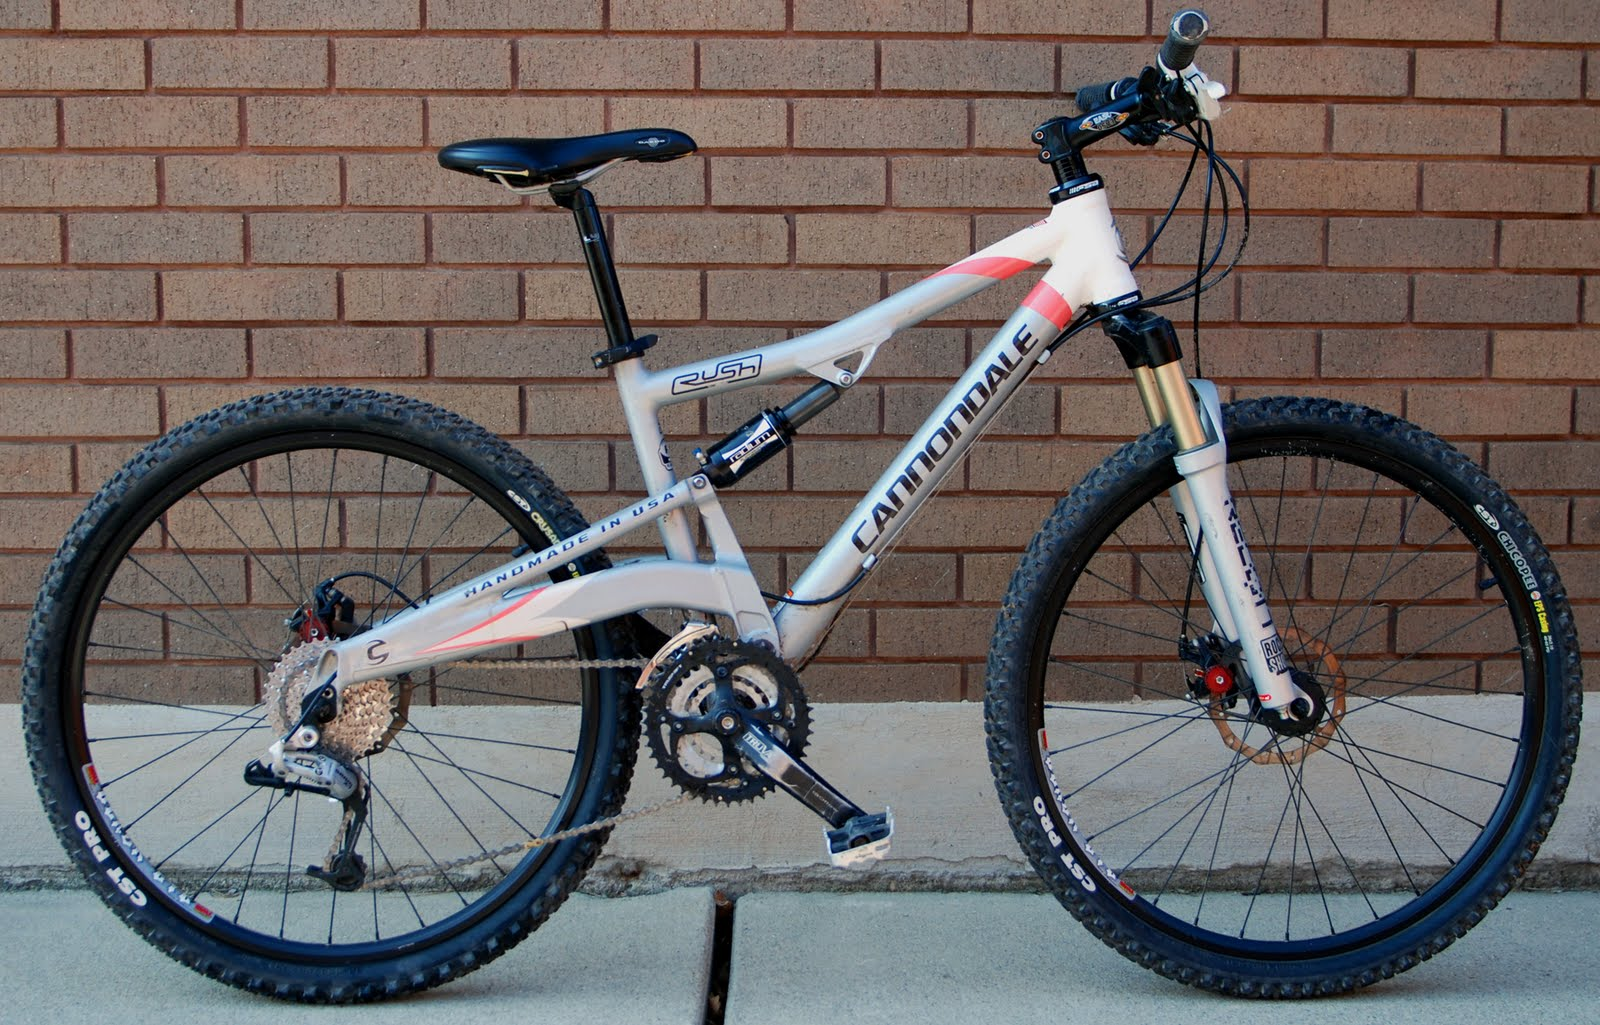 ANEX BICYCLES: 2007 Cannondale Rush Feminine 2